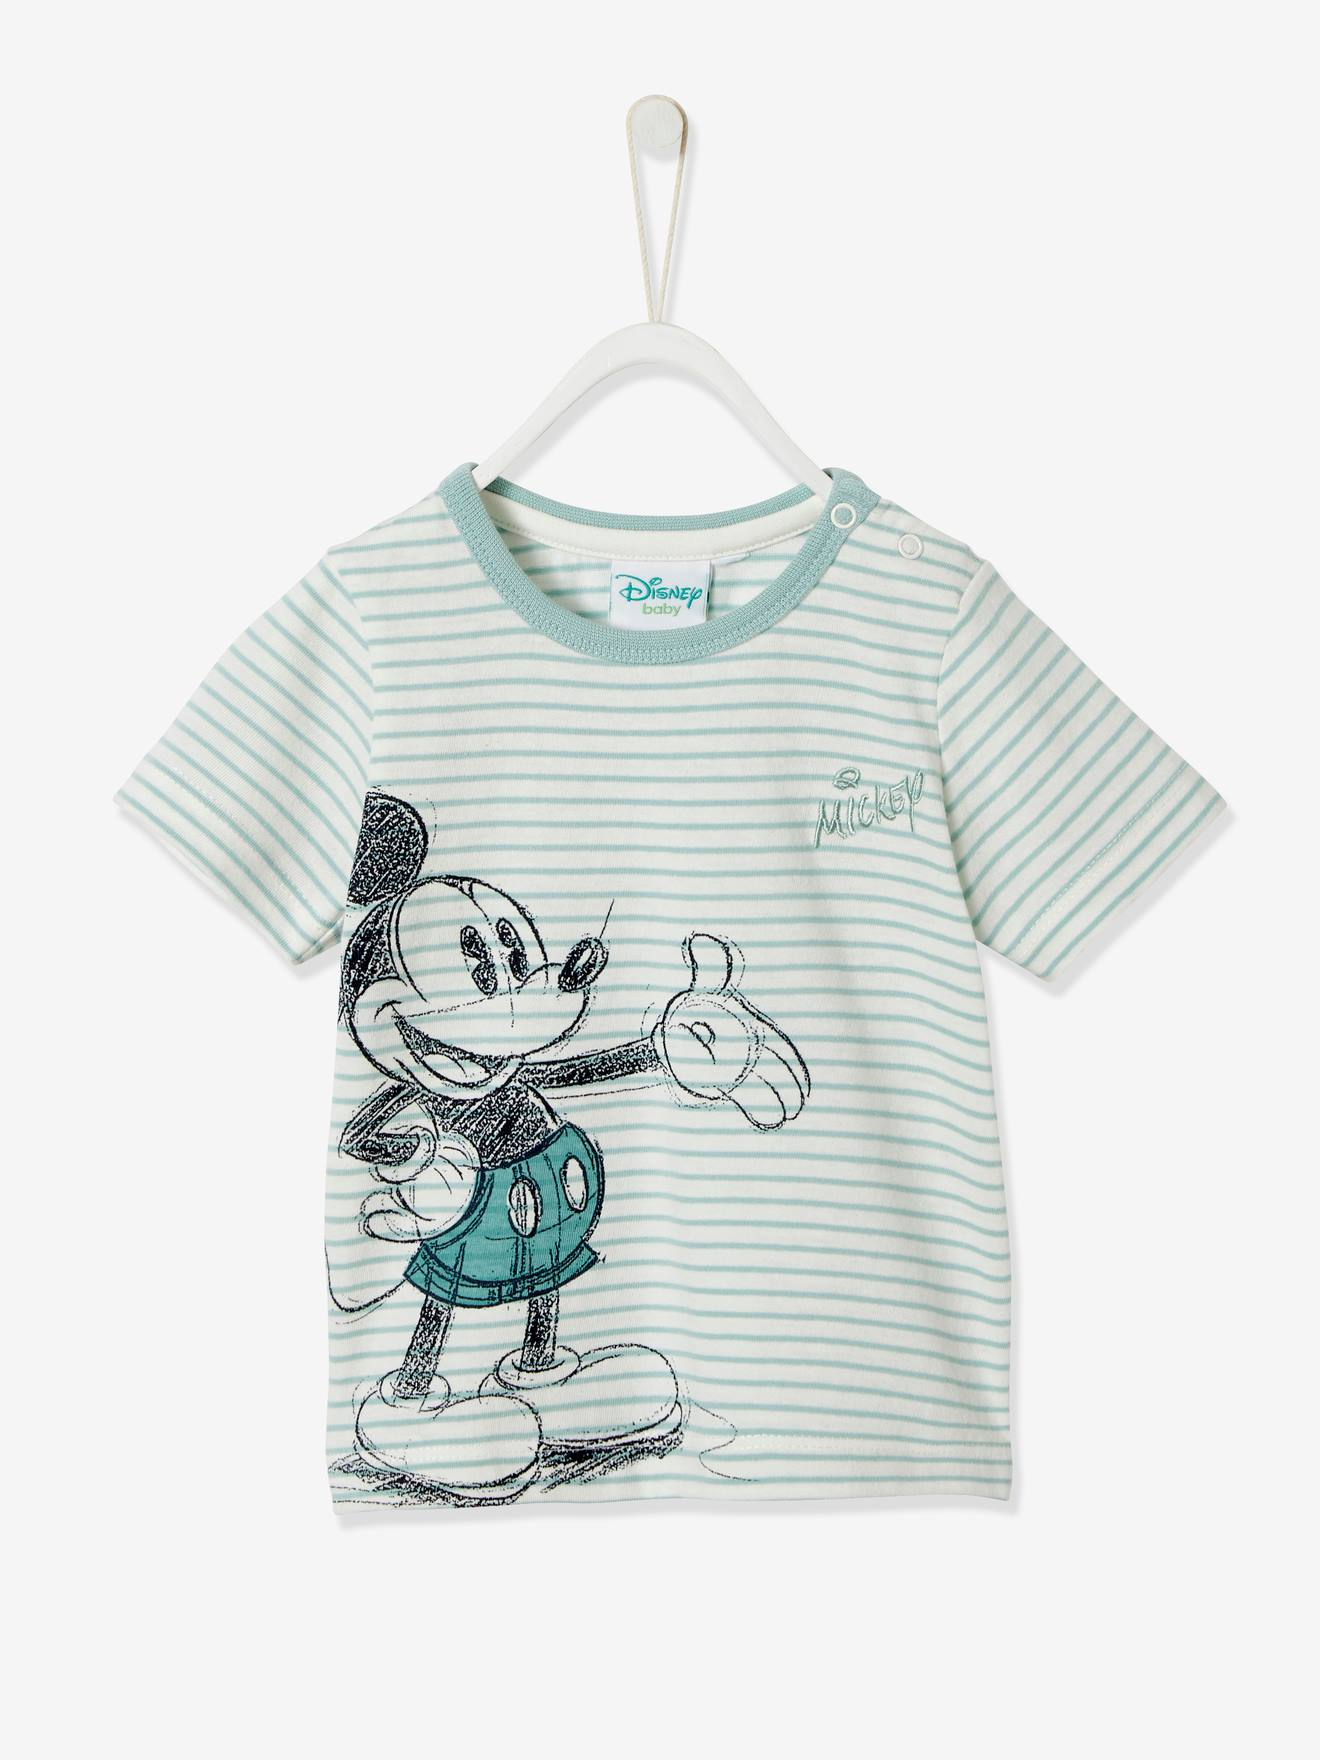 themed bedrooms for adults disney mickey mouse bedroom.htm mickey mouse t shirt for babies  by disney   blue light striped  baby  mickey mouse t shirt for babies  by